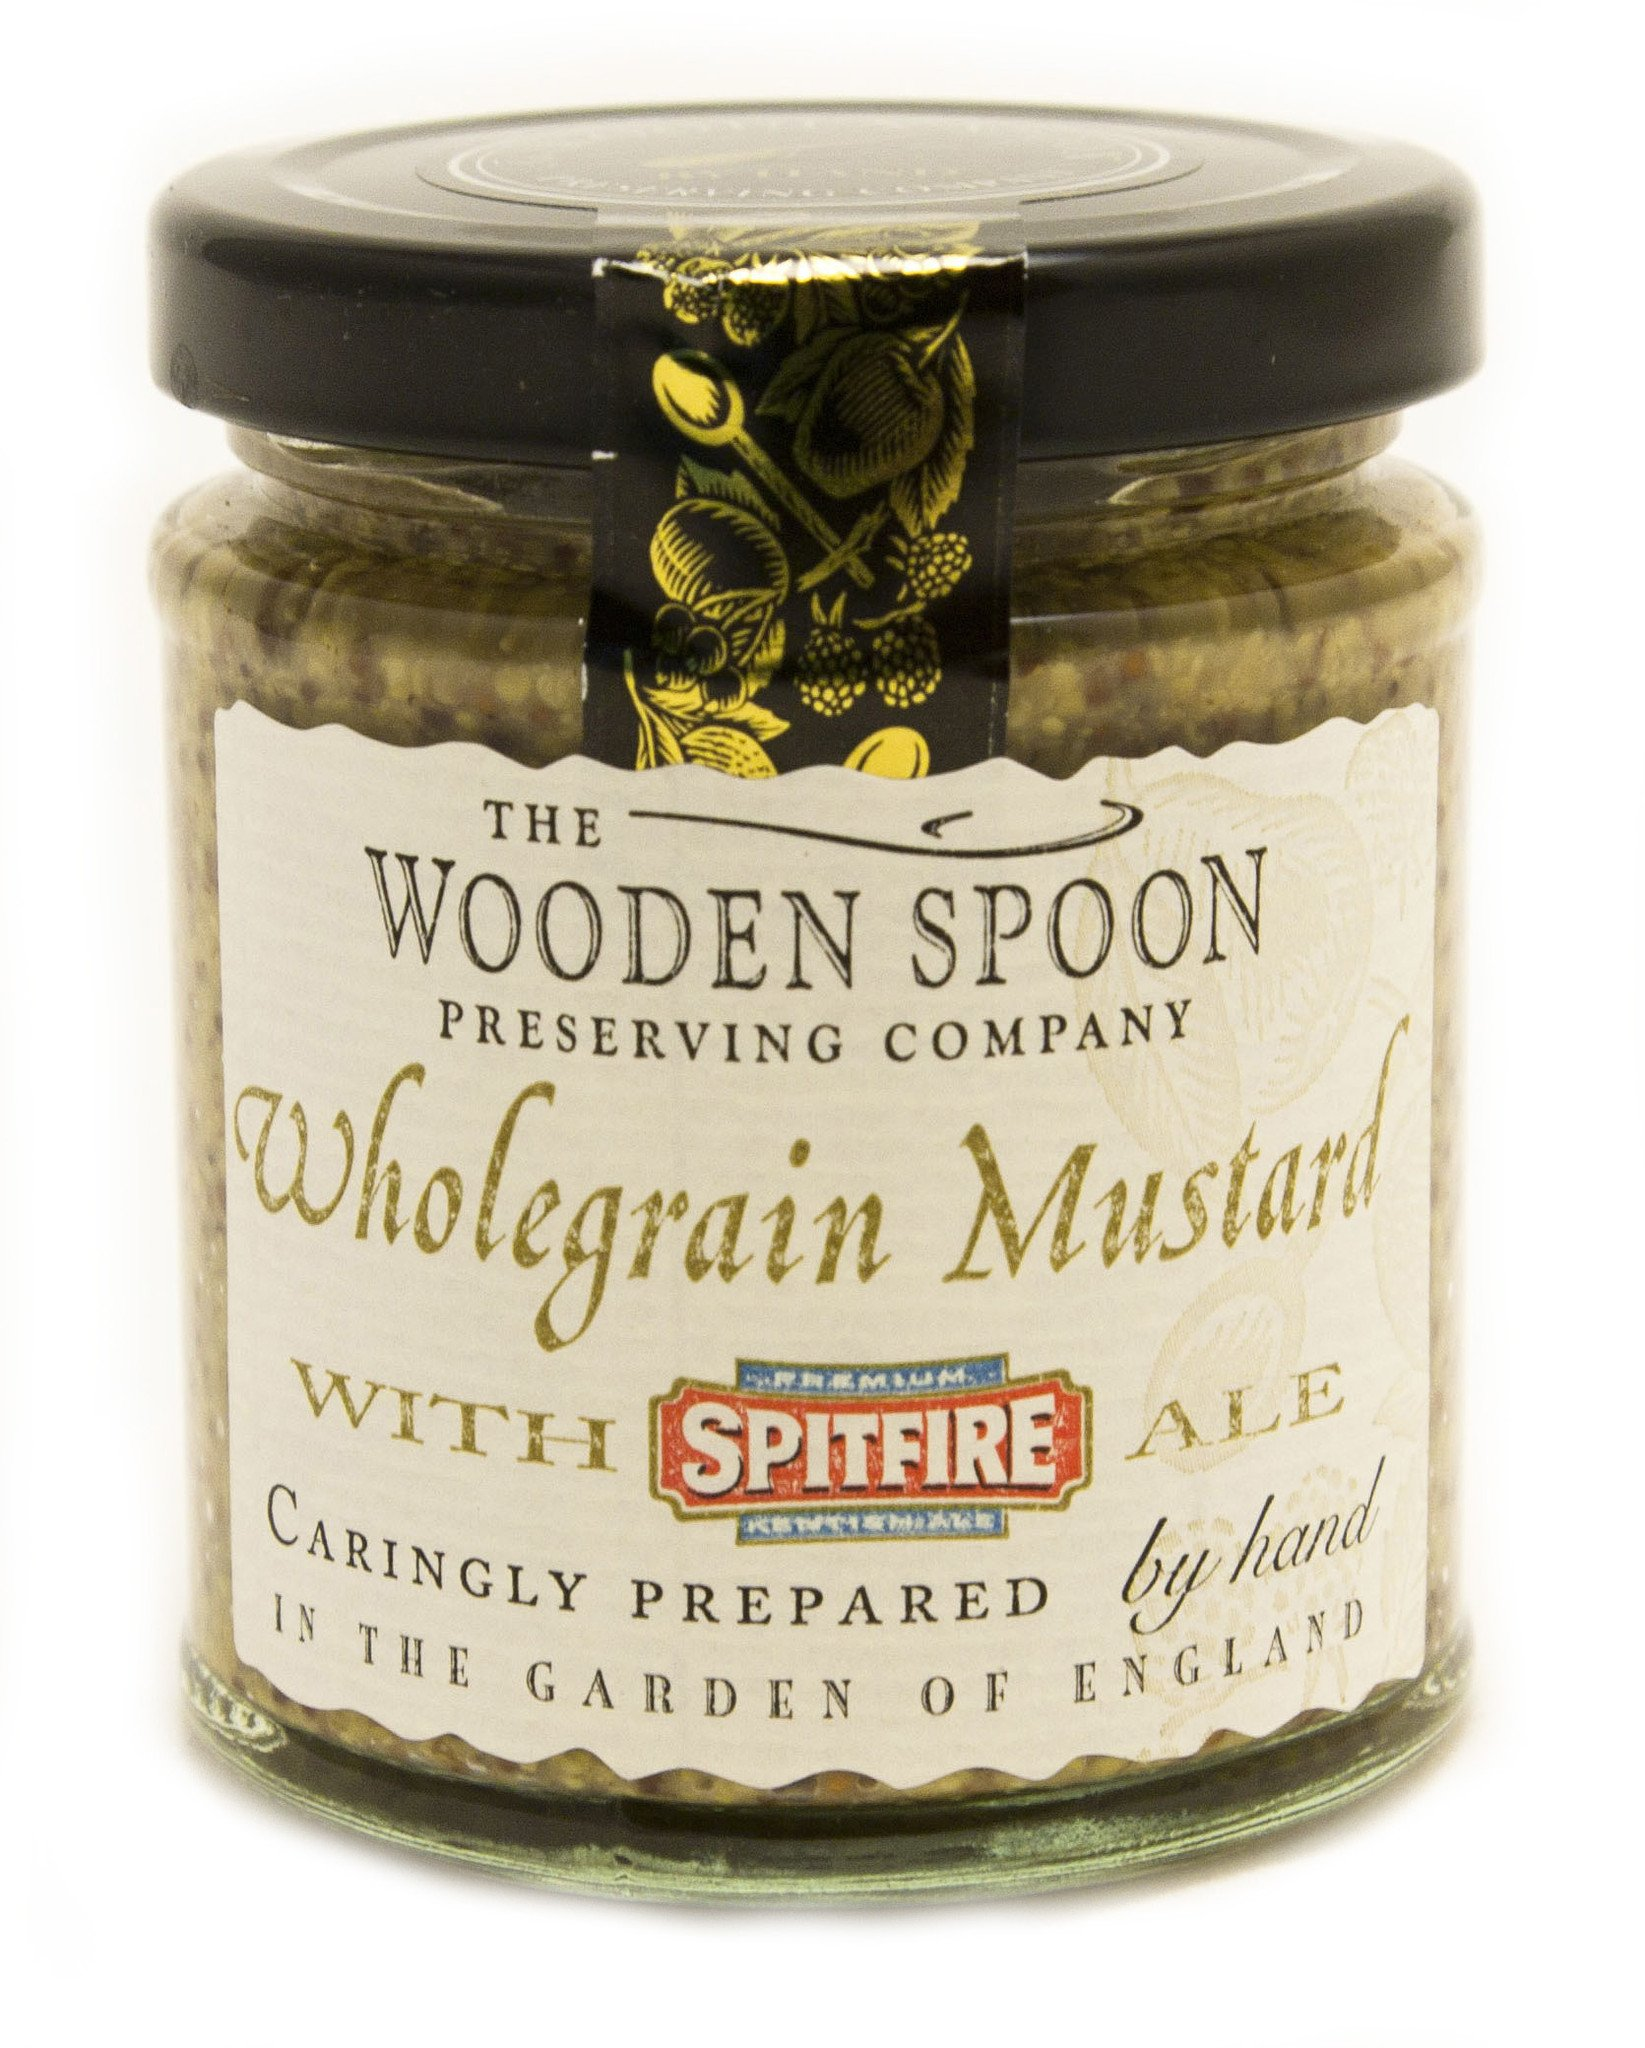 Wholegrain Mustard - With Spitfire Ale